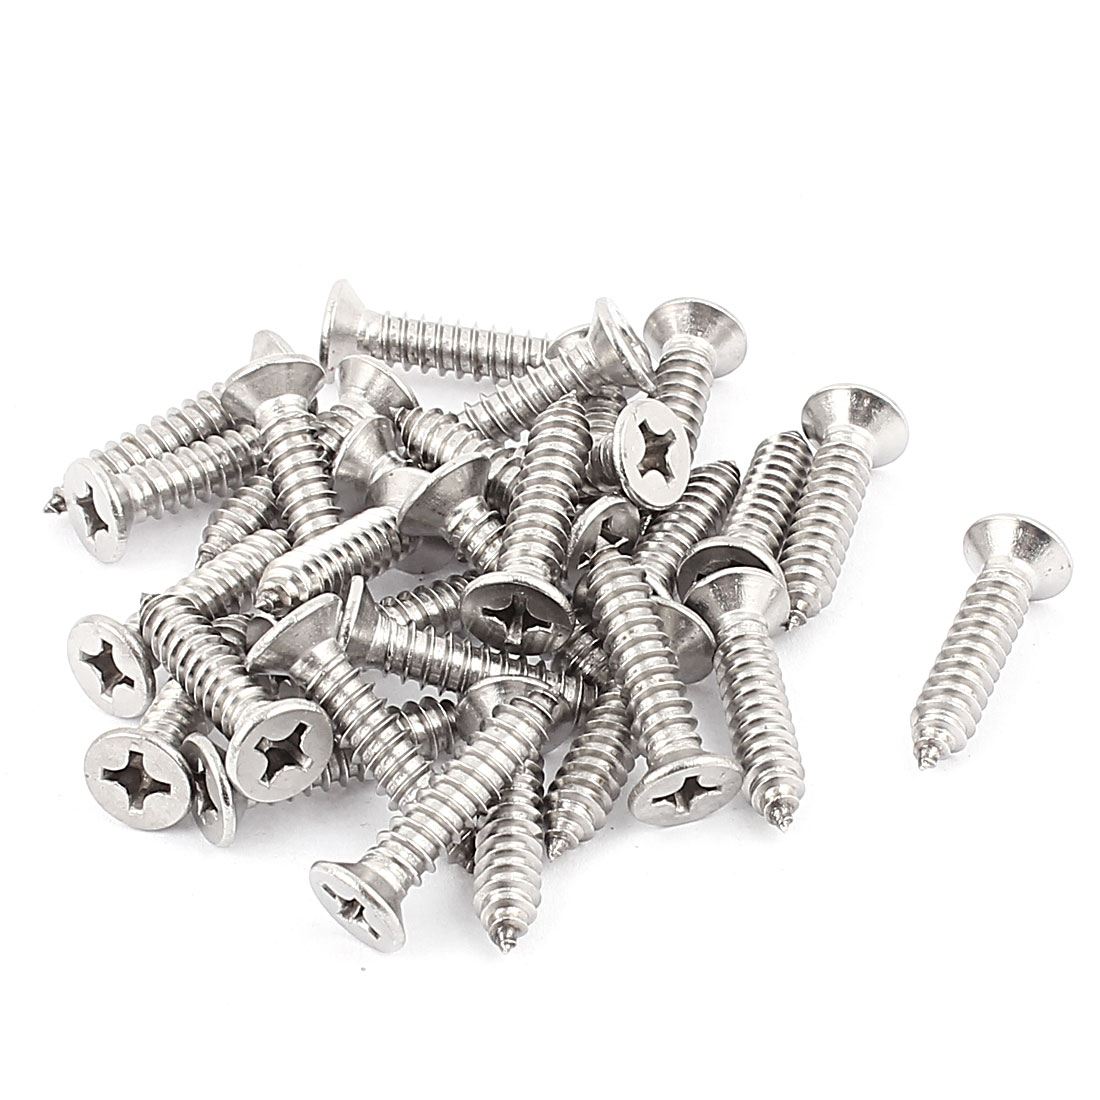 6.3mm x 32mm Countersunk Cross Head Self Tapping Screw Fasteners Silver Tone 30 Pcs